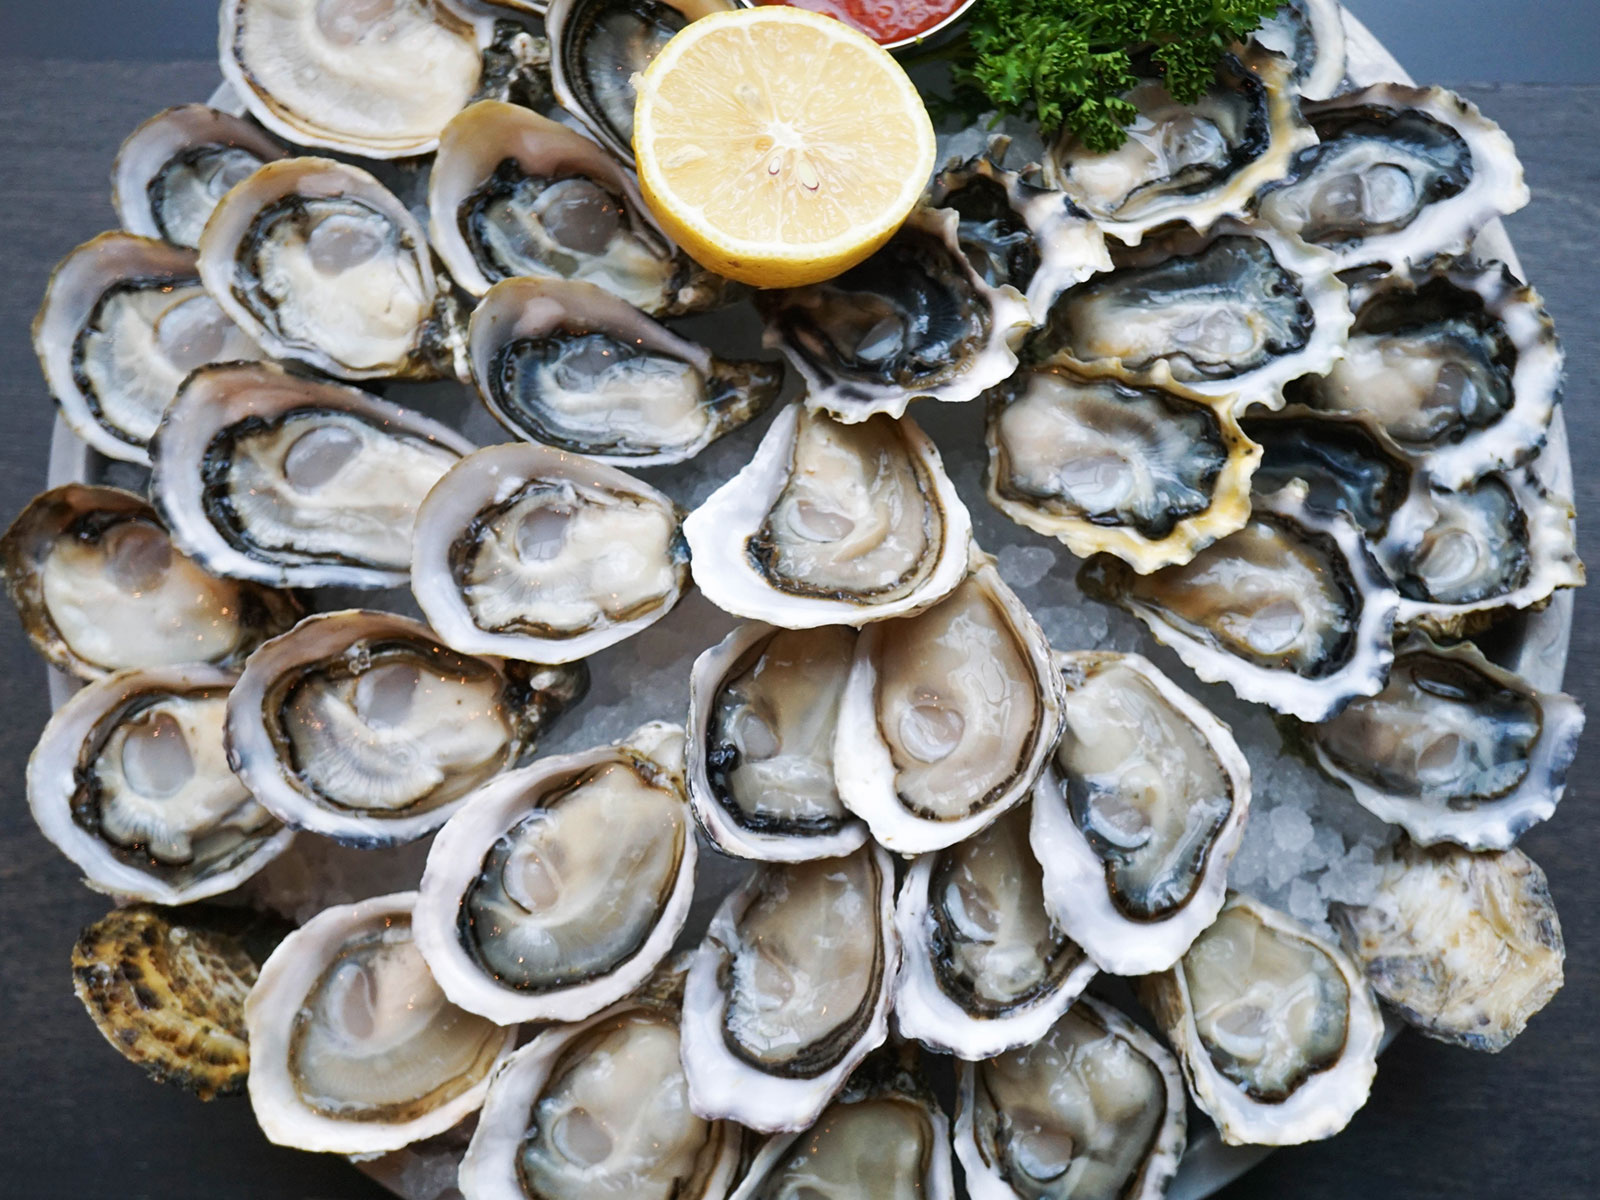 The Ultimate Road Trip for Oyster Lovers